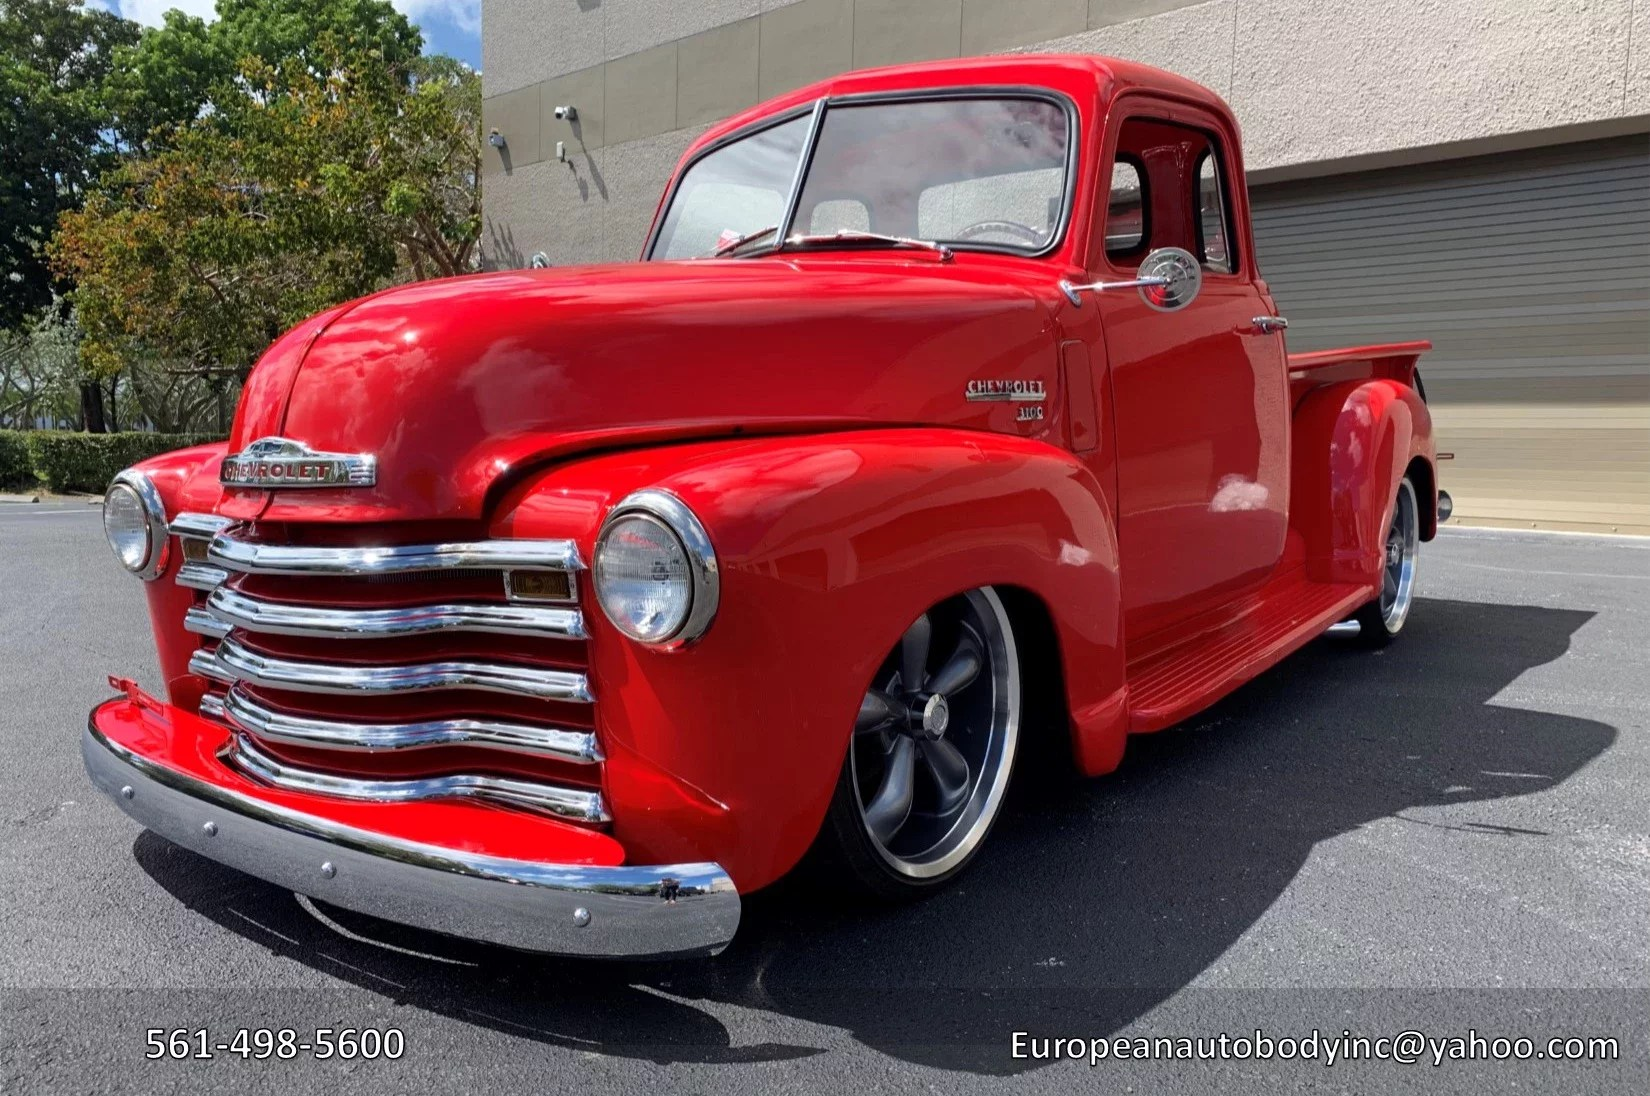 1950 chevrolet 3100 classics for sale classics on autotrader 1955 chevy pu wiring 1952 chevy 3100 [ 1650 x 1096 Pixel ]